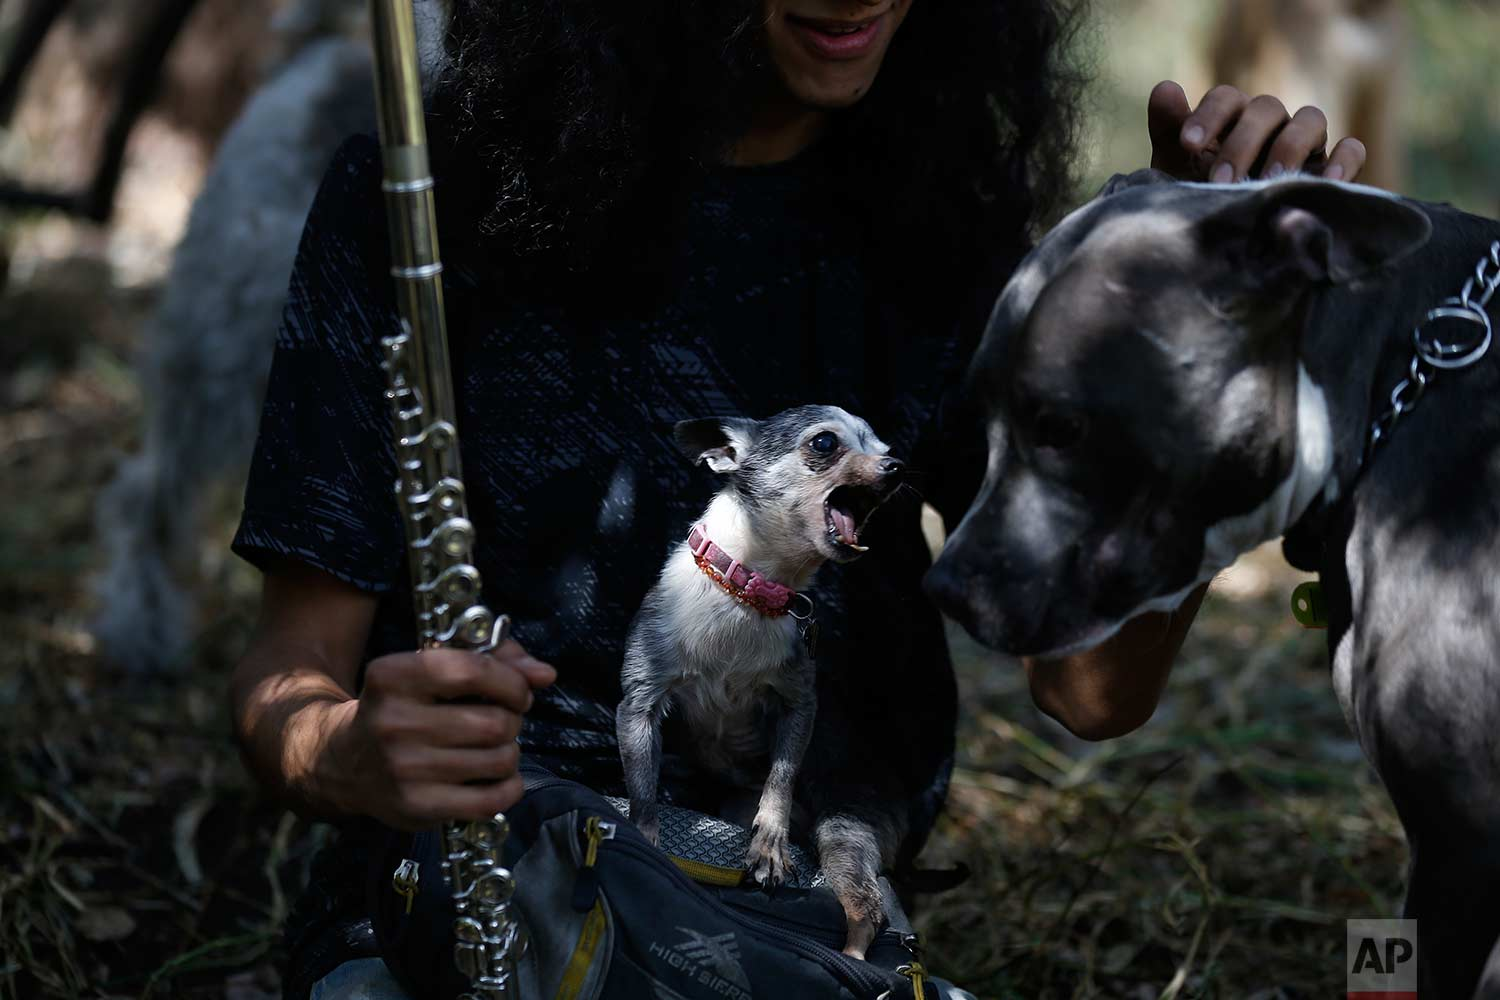 In this Wednesday, Dec. 24, 2017 photo, Azucar the chihuahua makes herself felt as she sits on her care taker Jair Benavides's lap, during a trip to Chapultepec forest in Mexico City. About half the dogs in the shelter run by Jair and Mariam are strays awaiting adoption. (AP Photo/Marco Ugarte)